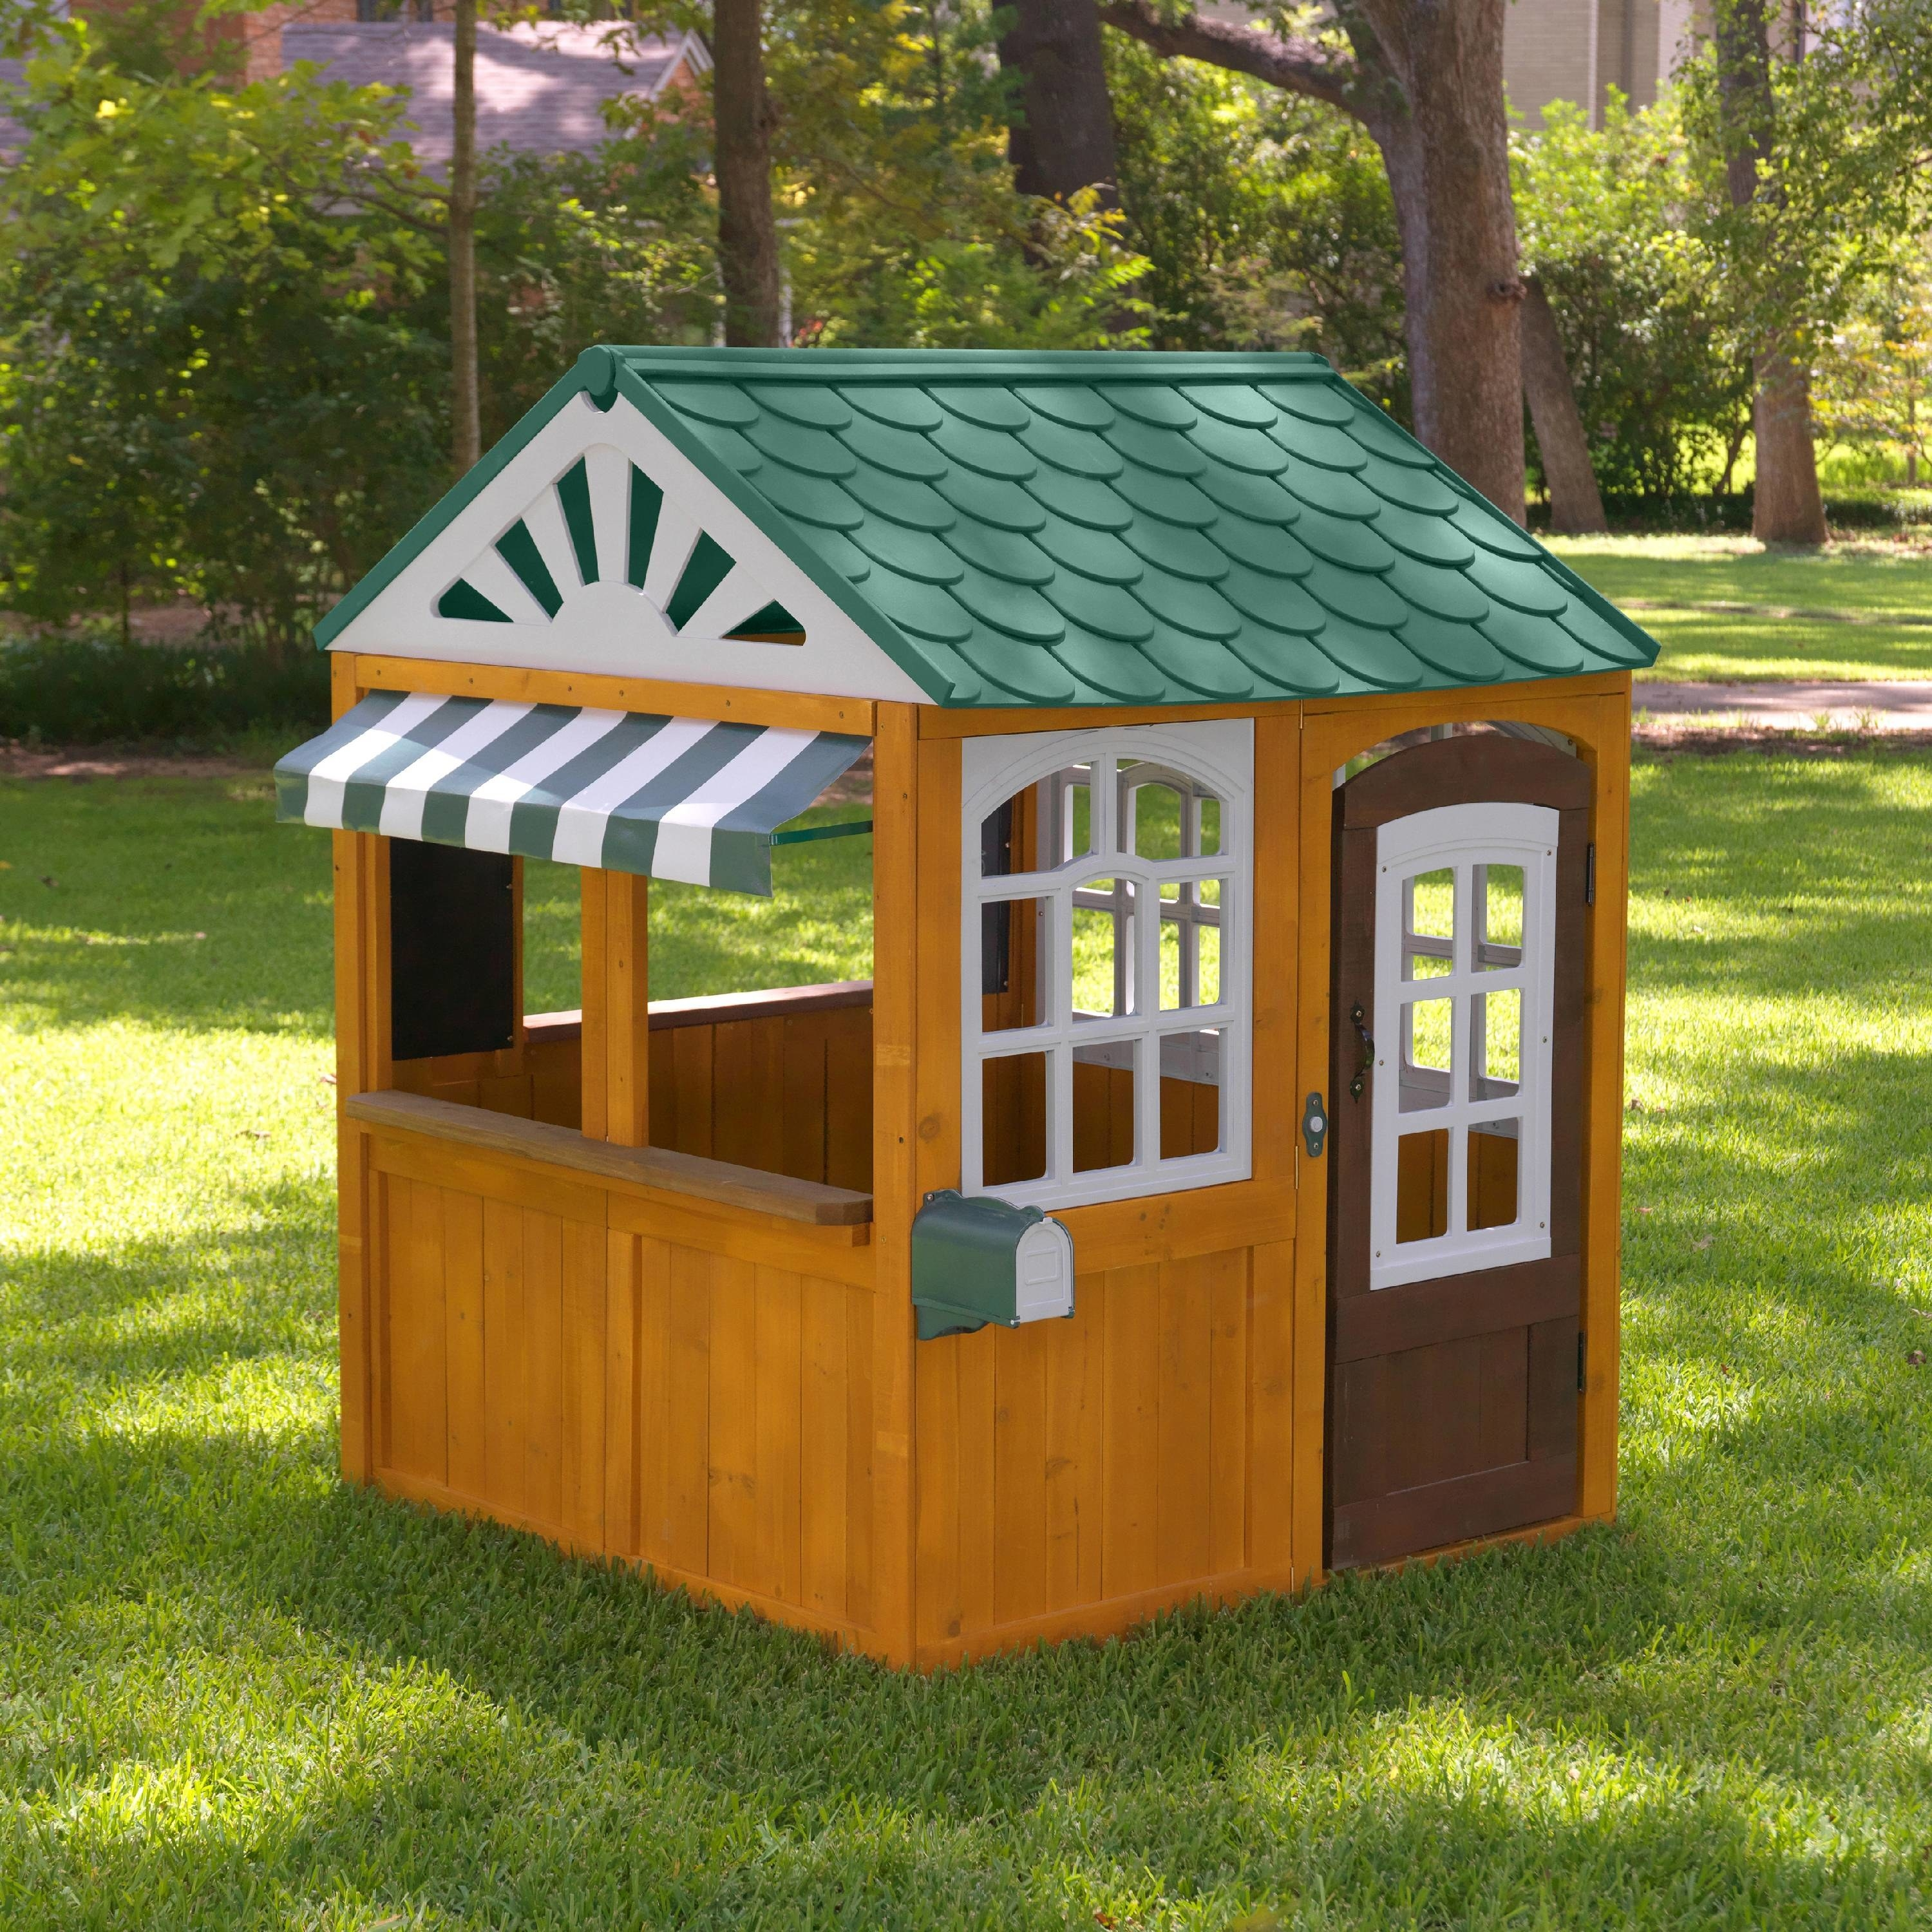 The outdoor playhouse